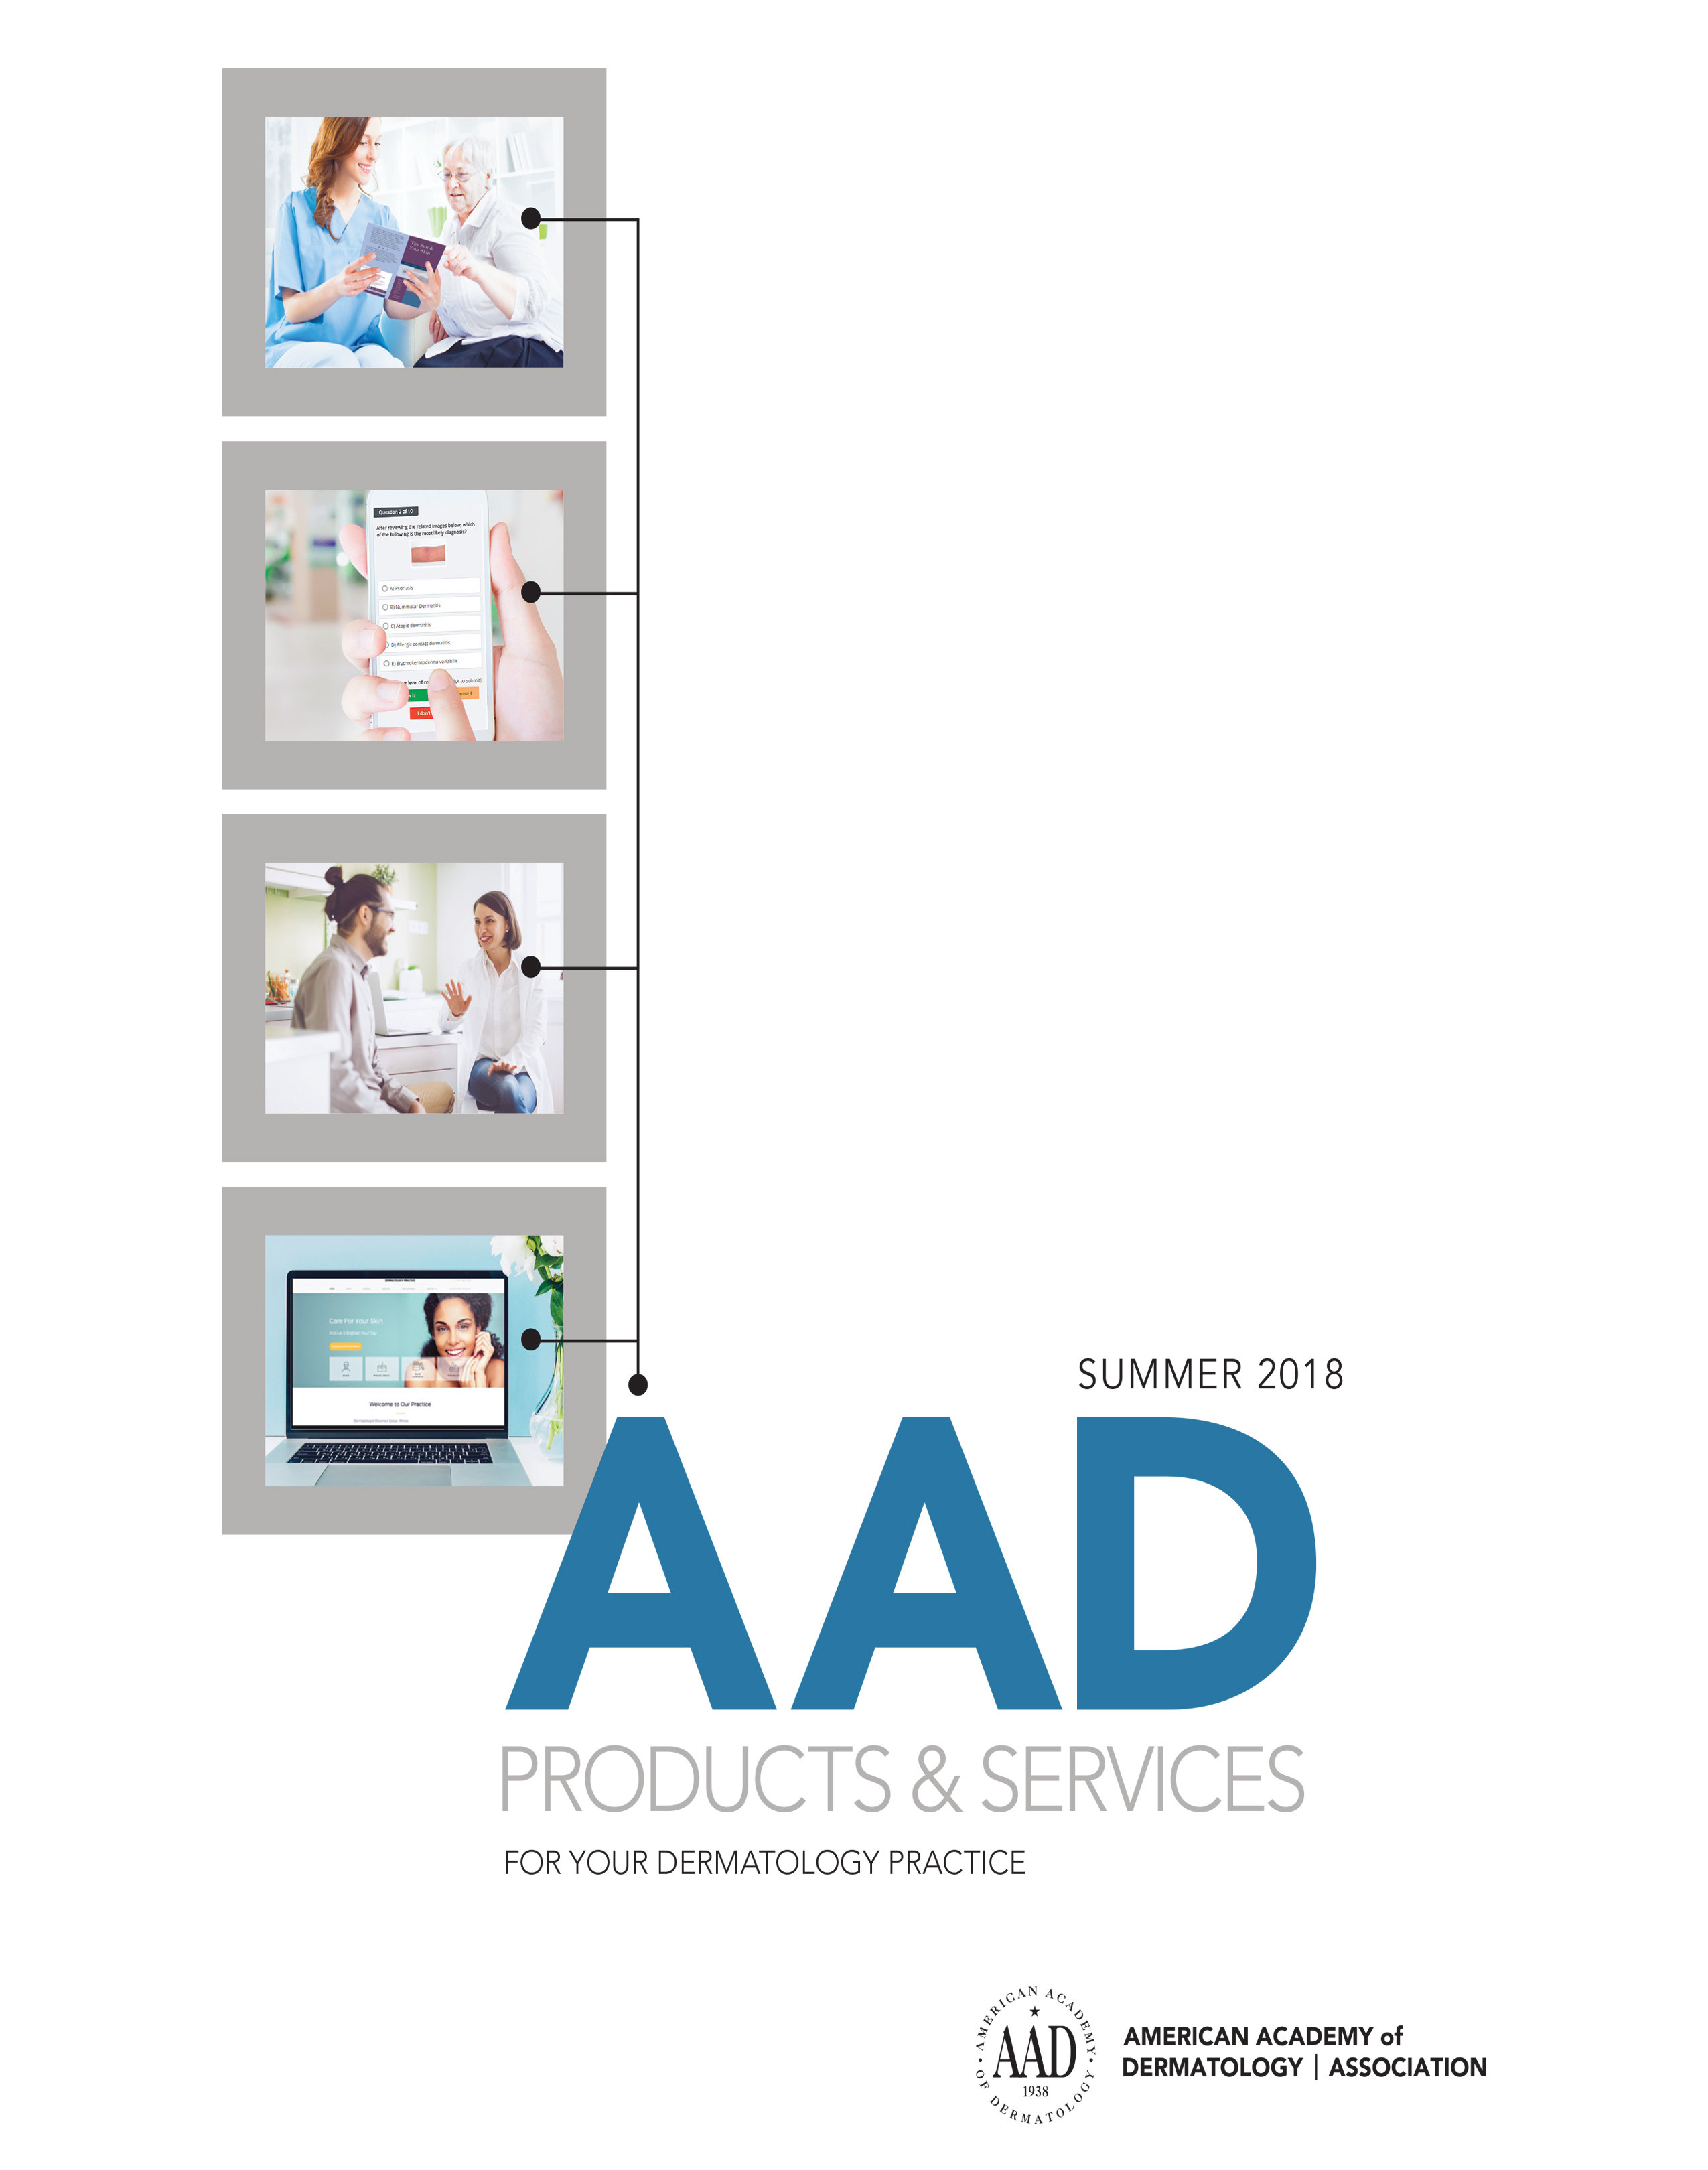 New AAD Guidelines Address Best Practices for Preventing and Treating Basal Cell and Squamous Cell Skin Cancer